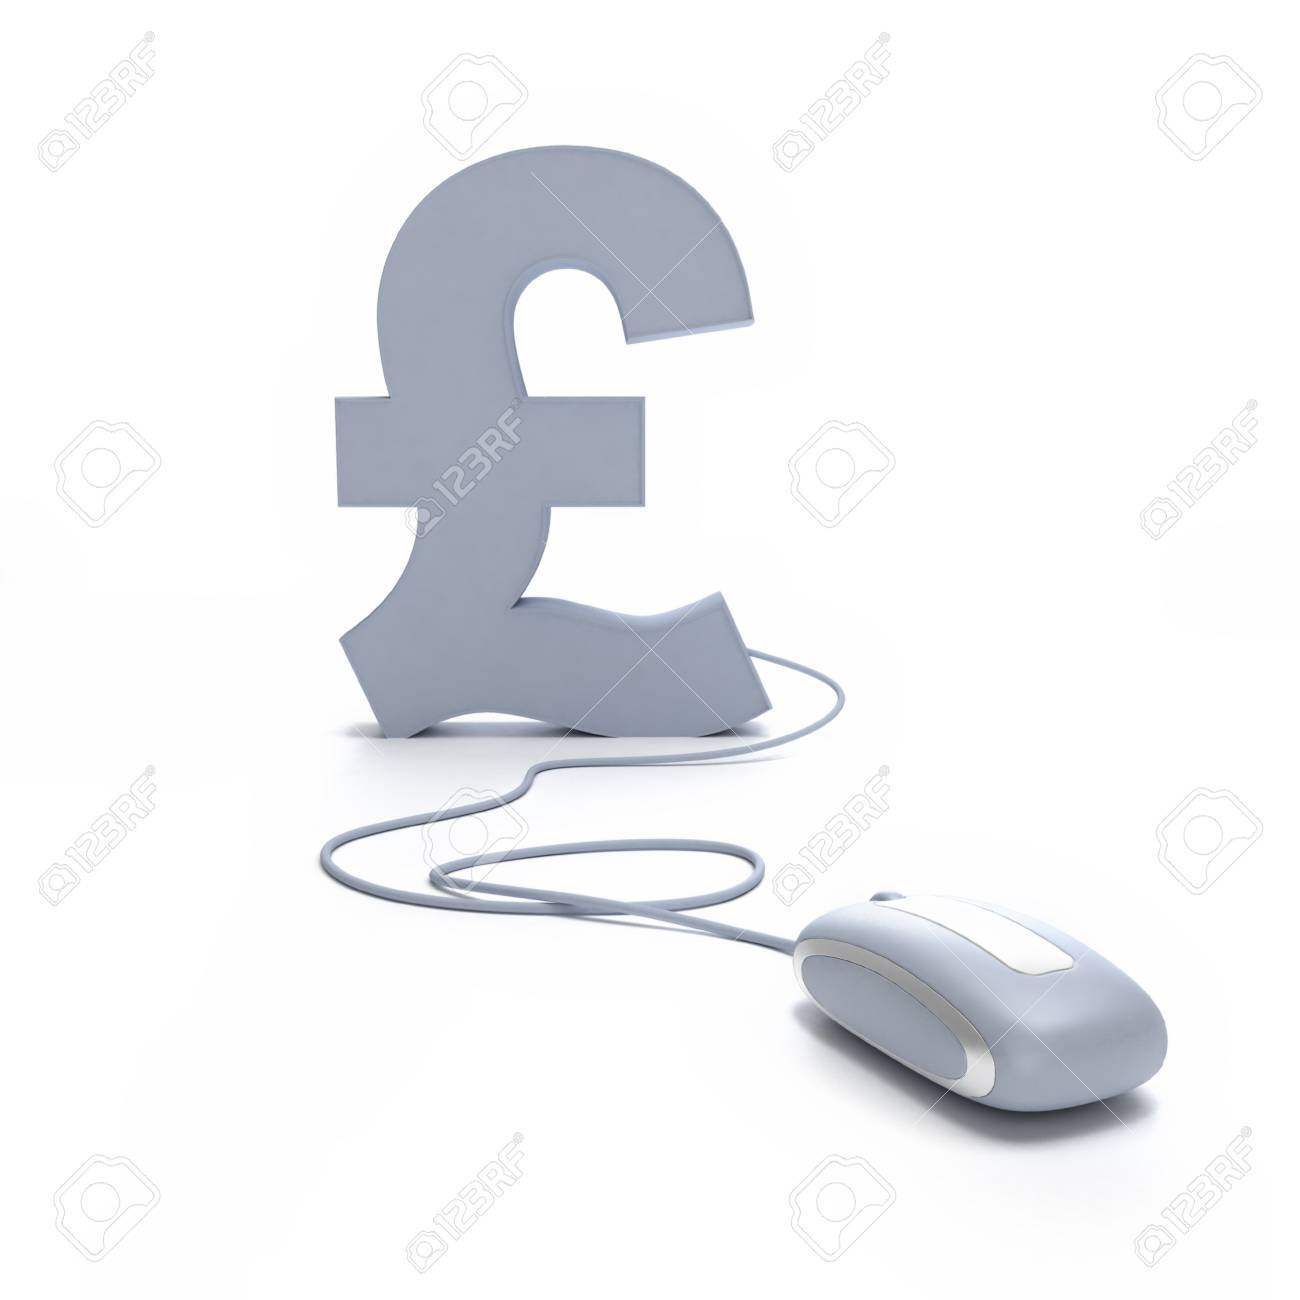 3d Rendering Of A Pound Symbol Connected To A Computer Mouse Stock